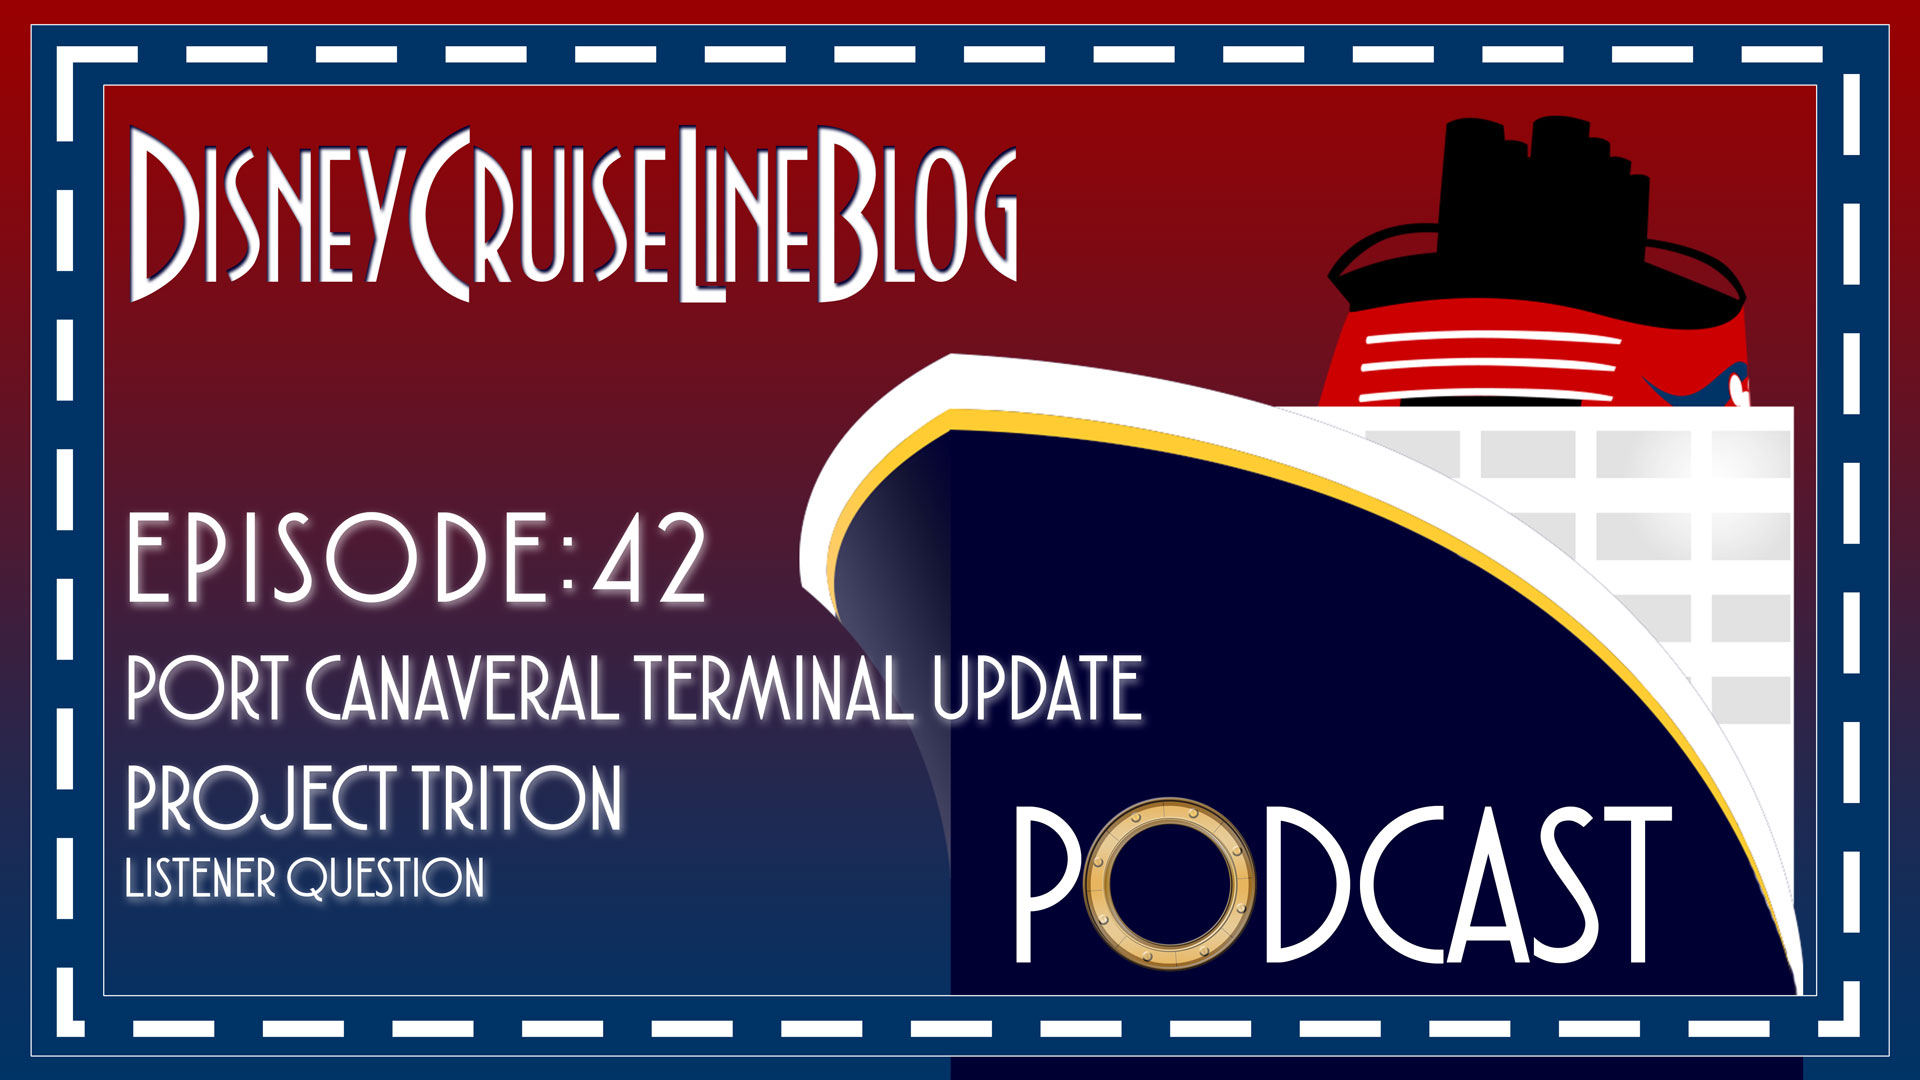 DCL Blog Podcast Episode 42 PC Terminal Triton Questions